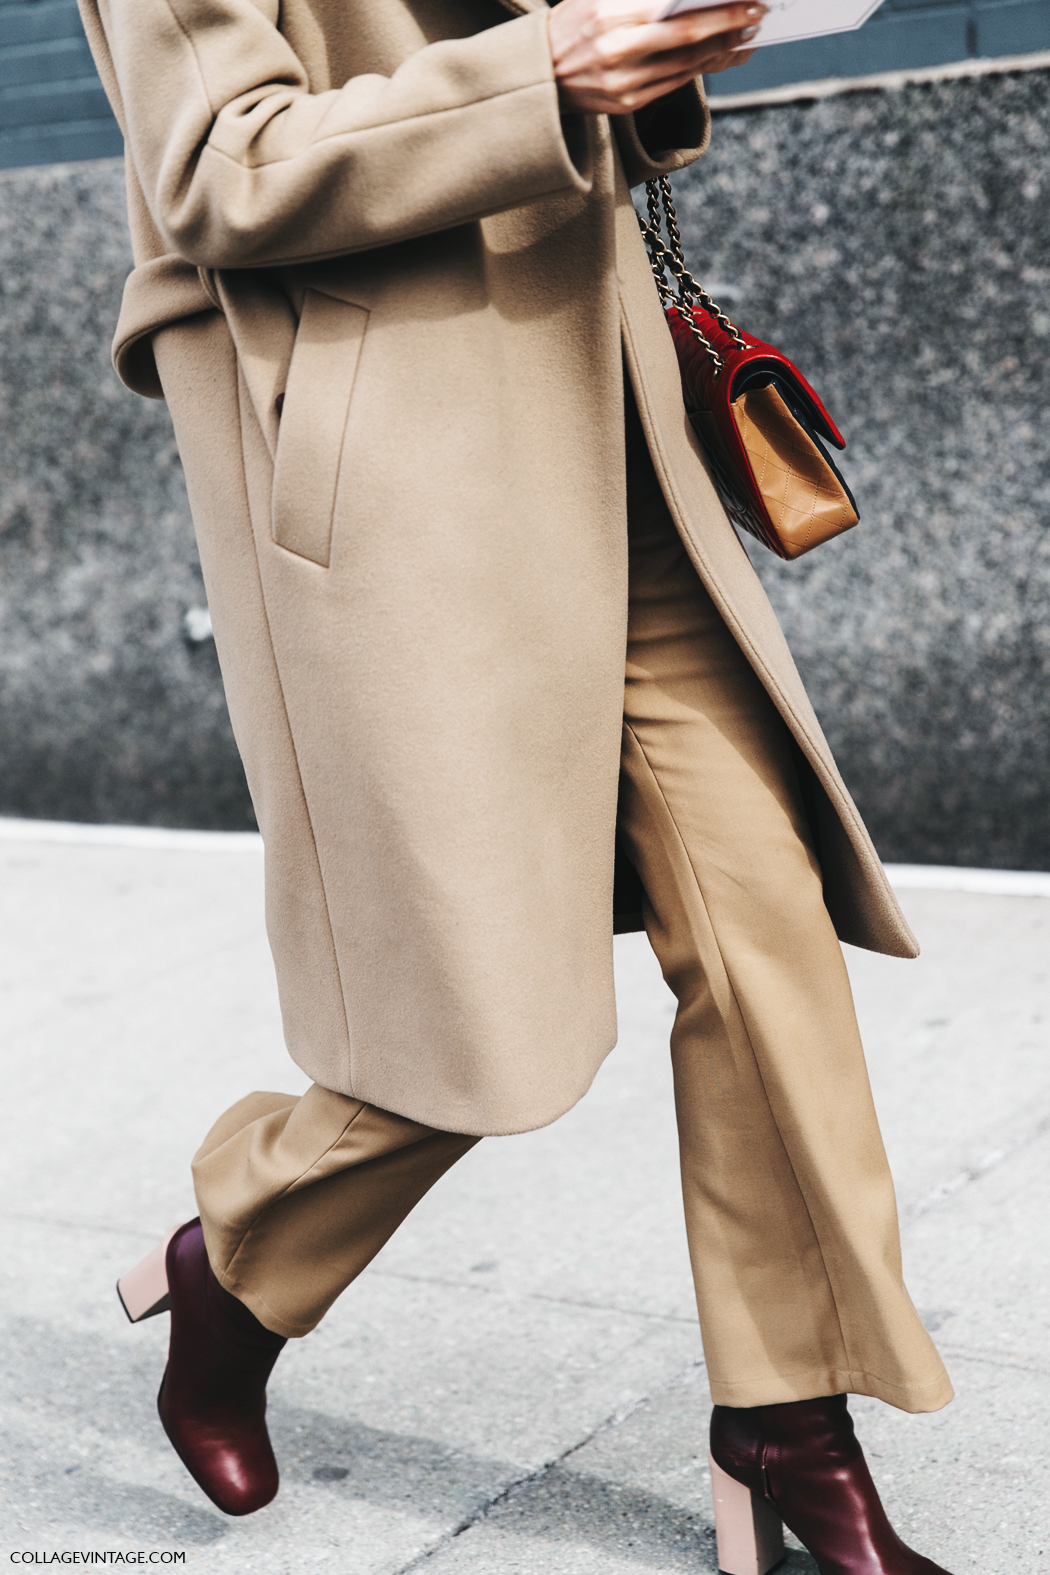 NYFW-New_York_Fashion_Week-Fall_Winter-17-Street_Style-Camel_Coat-Chanel-2